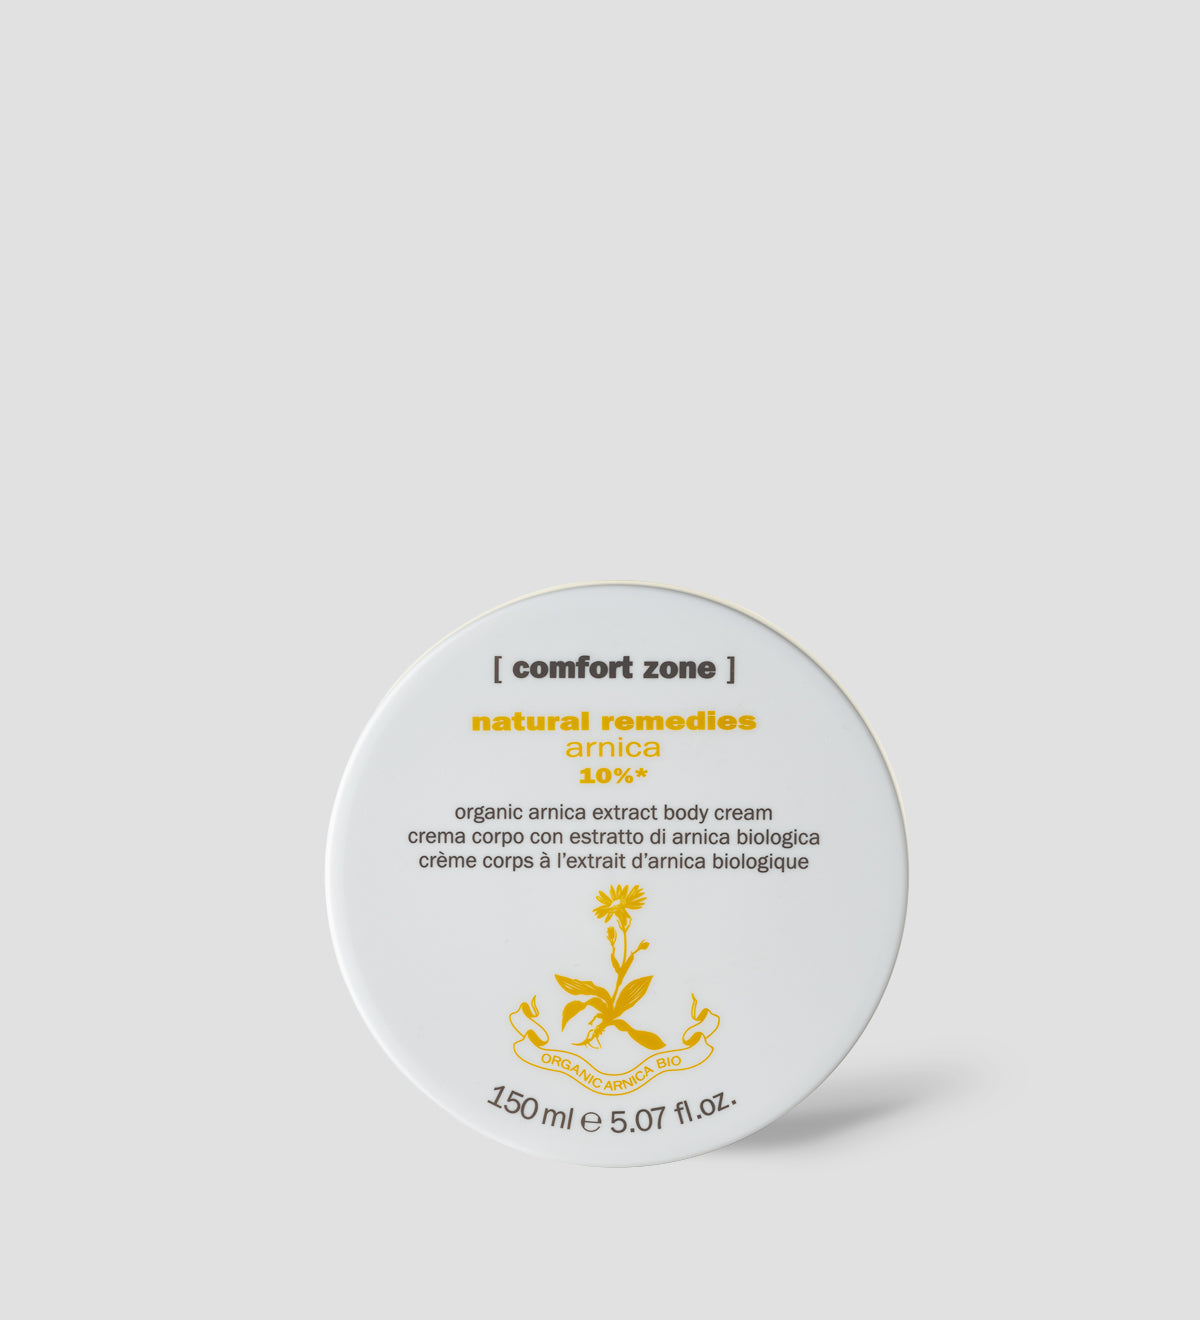 Comfort Zone: NATURAL REMEDIES ARNICA 10% Organic arnica extract body treatment cream-1